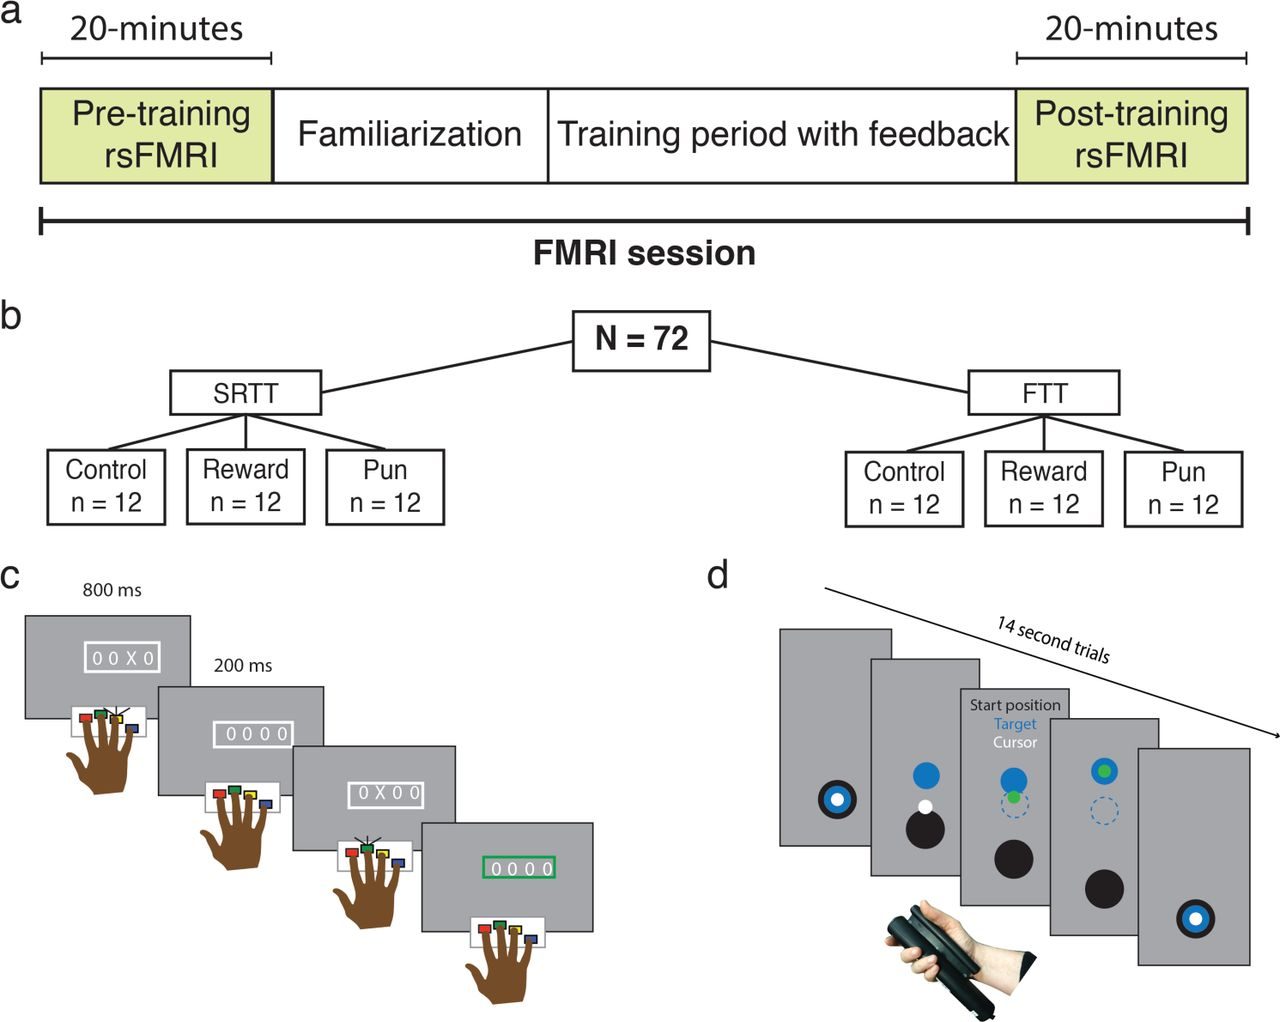 Differential impact of reward and punishment on functional